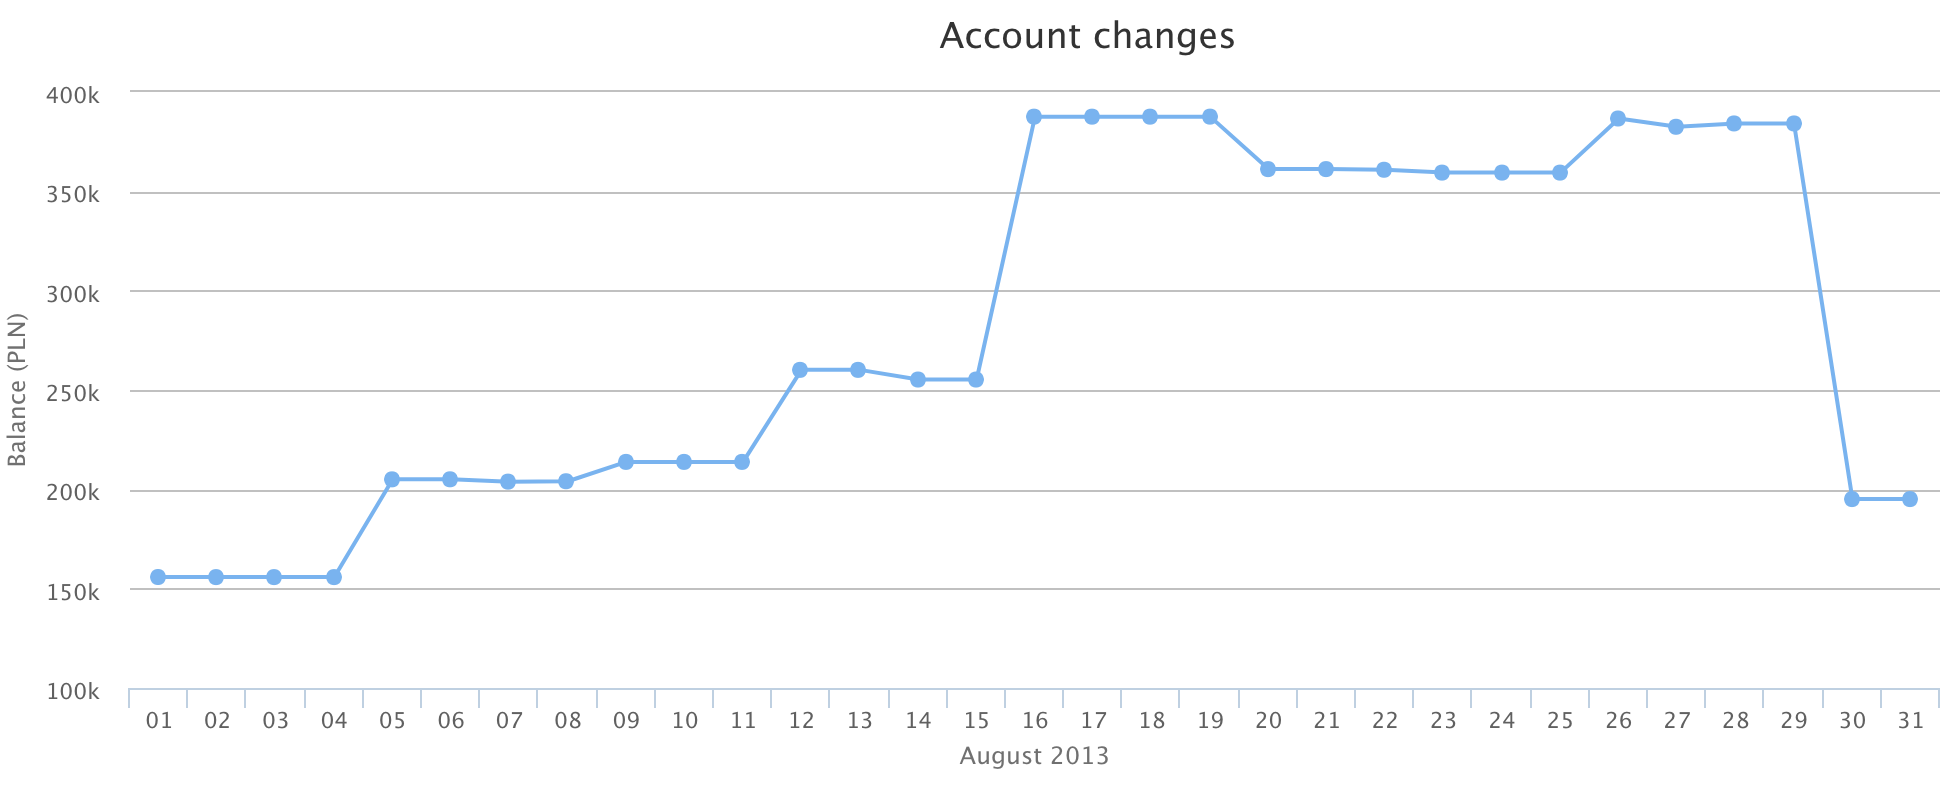 Account state in August 2013